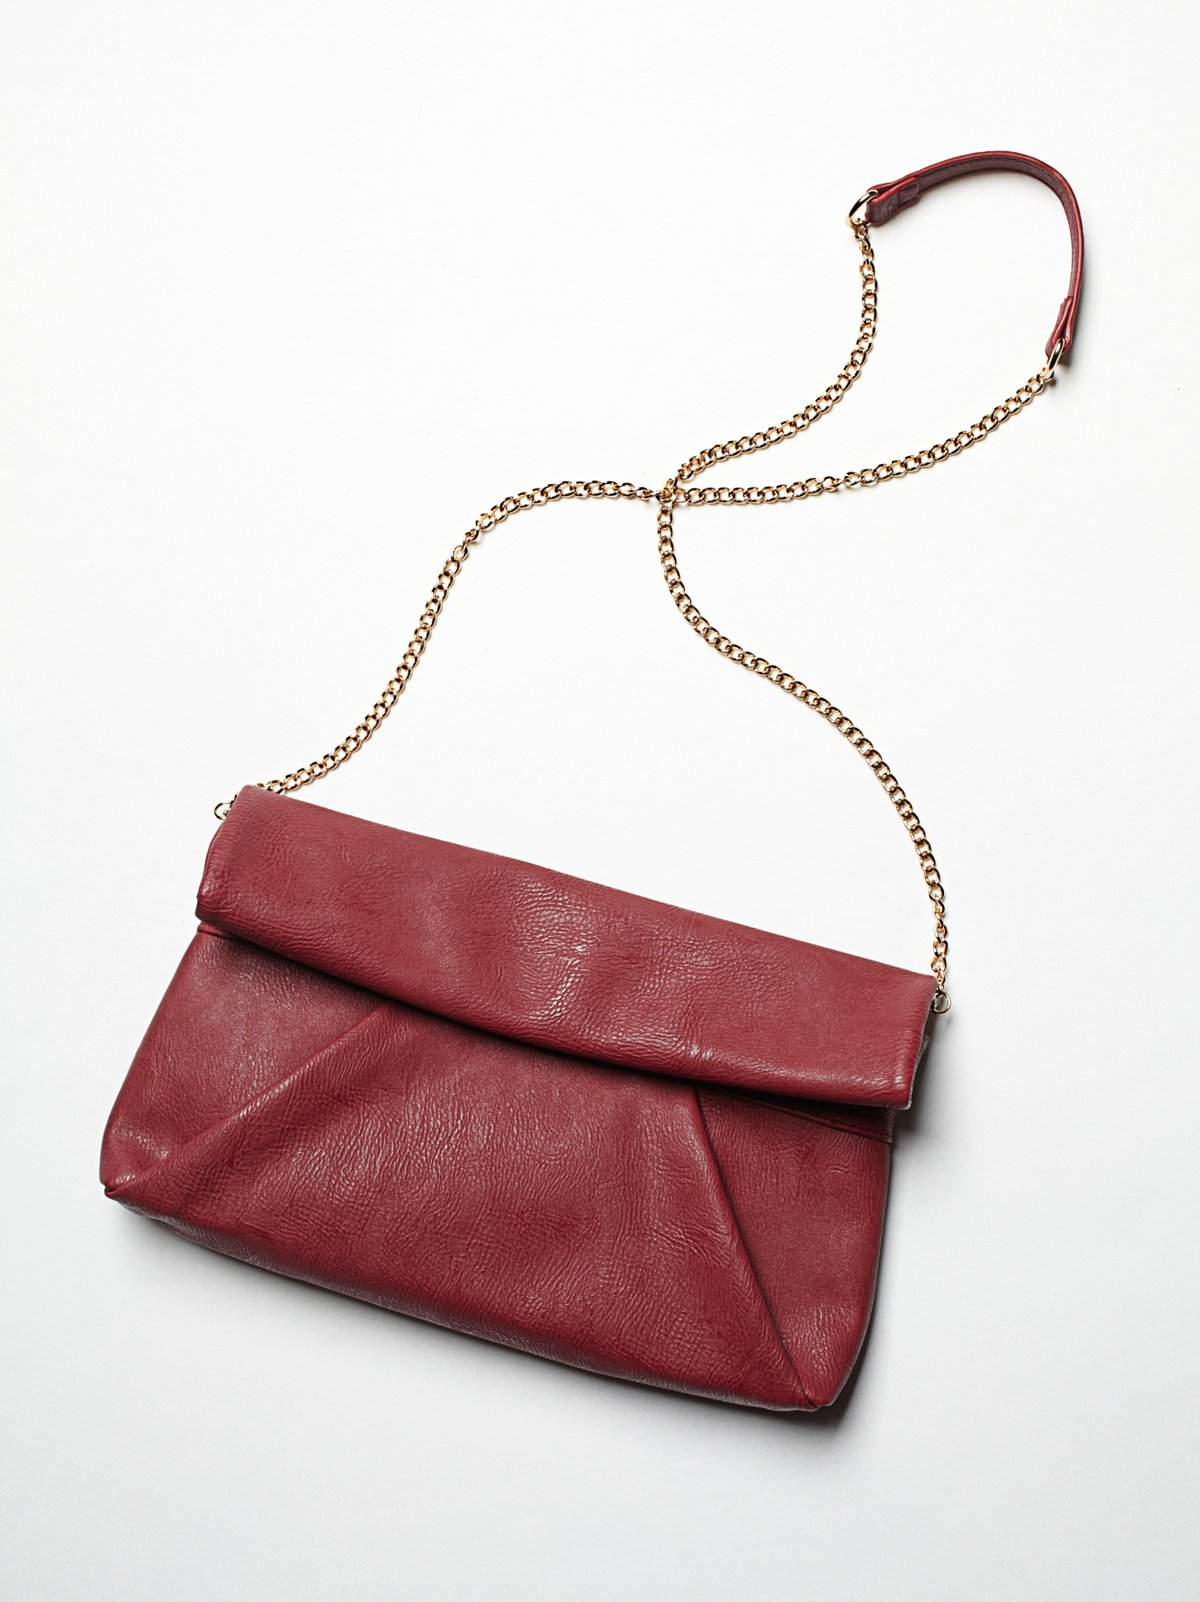 Harper Vegan Clutch